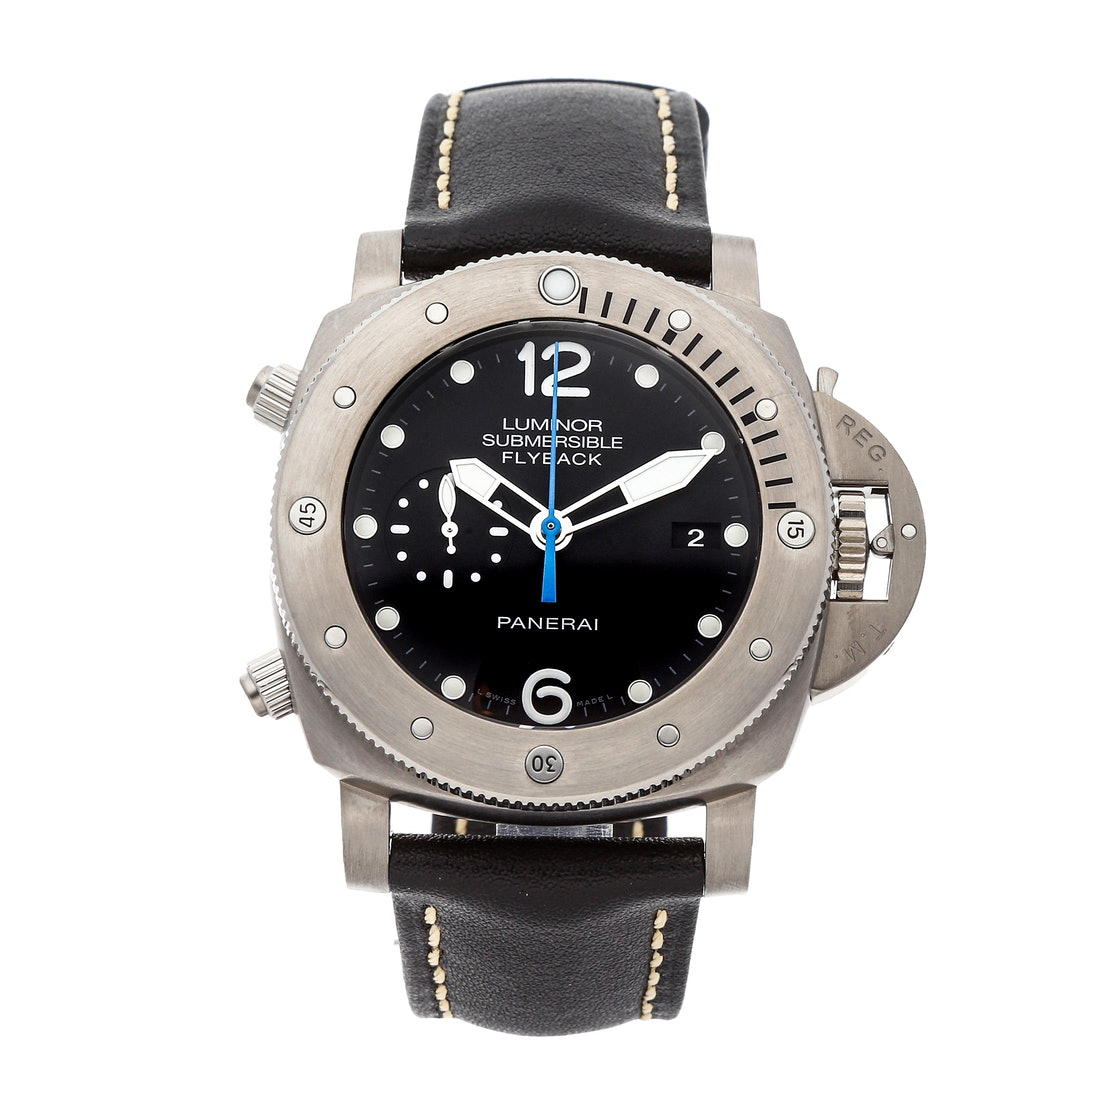 Panerai Luminor Submersible 1950 3-Days Chrono Flyback Titanio PAM 614